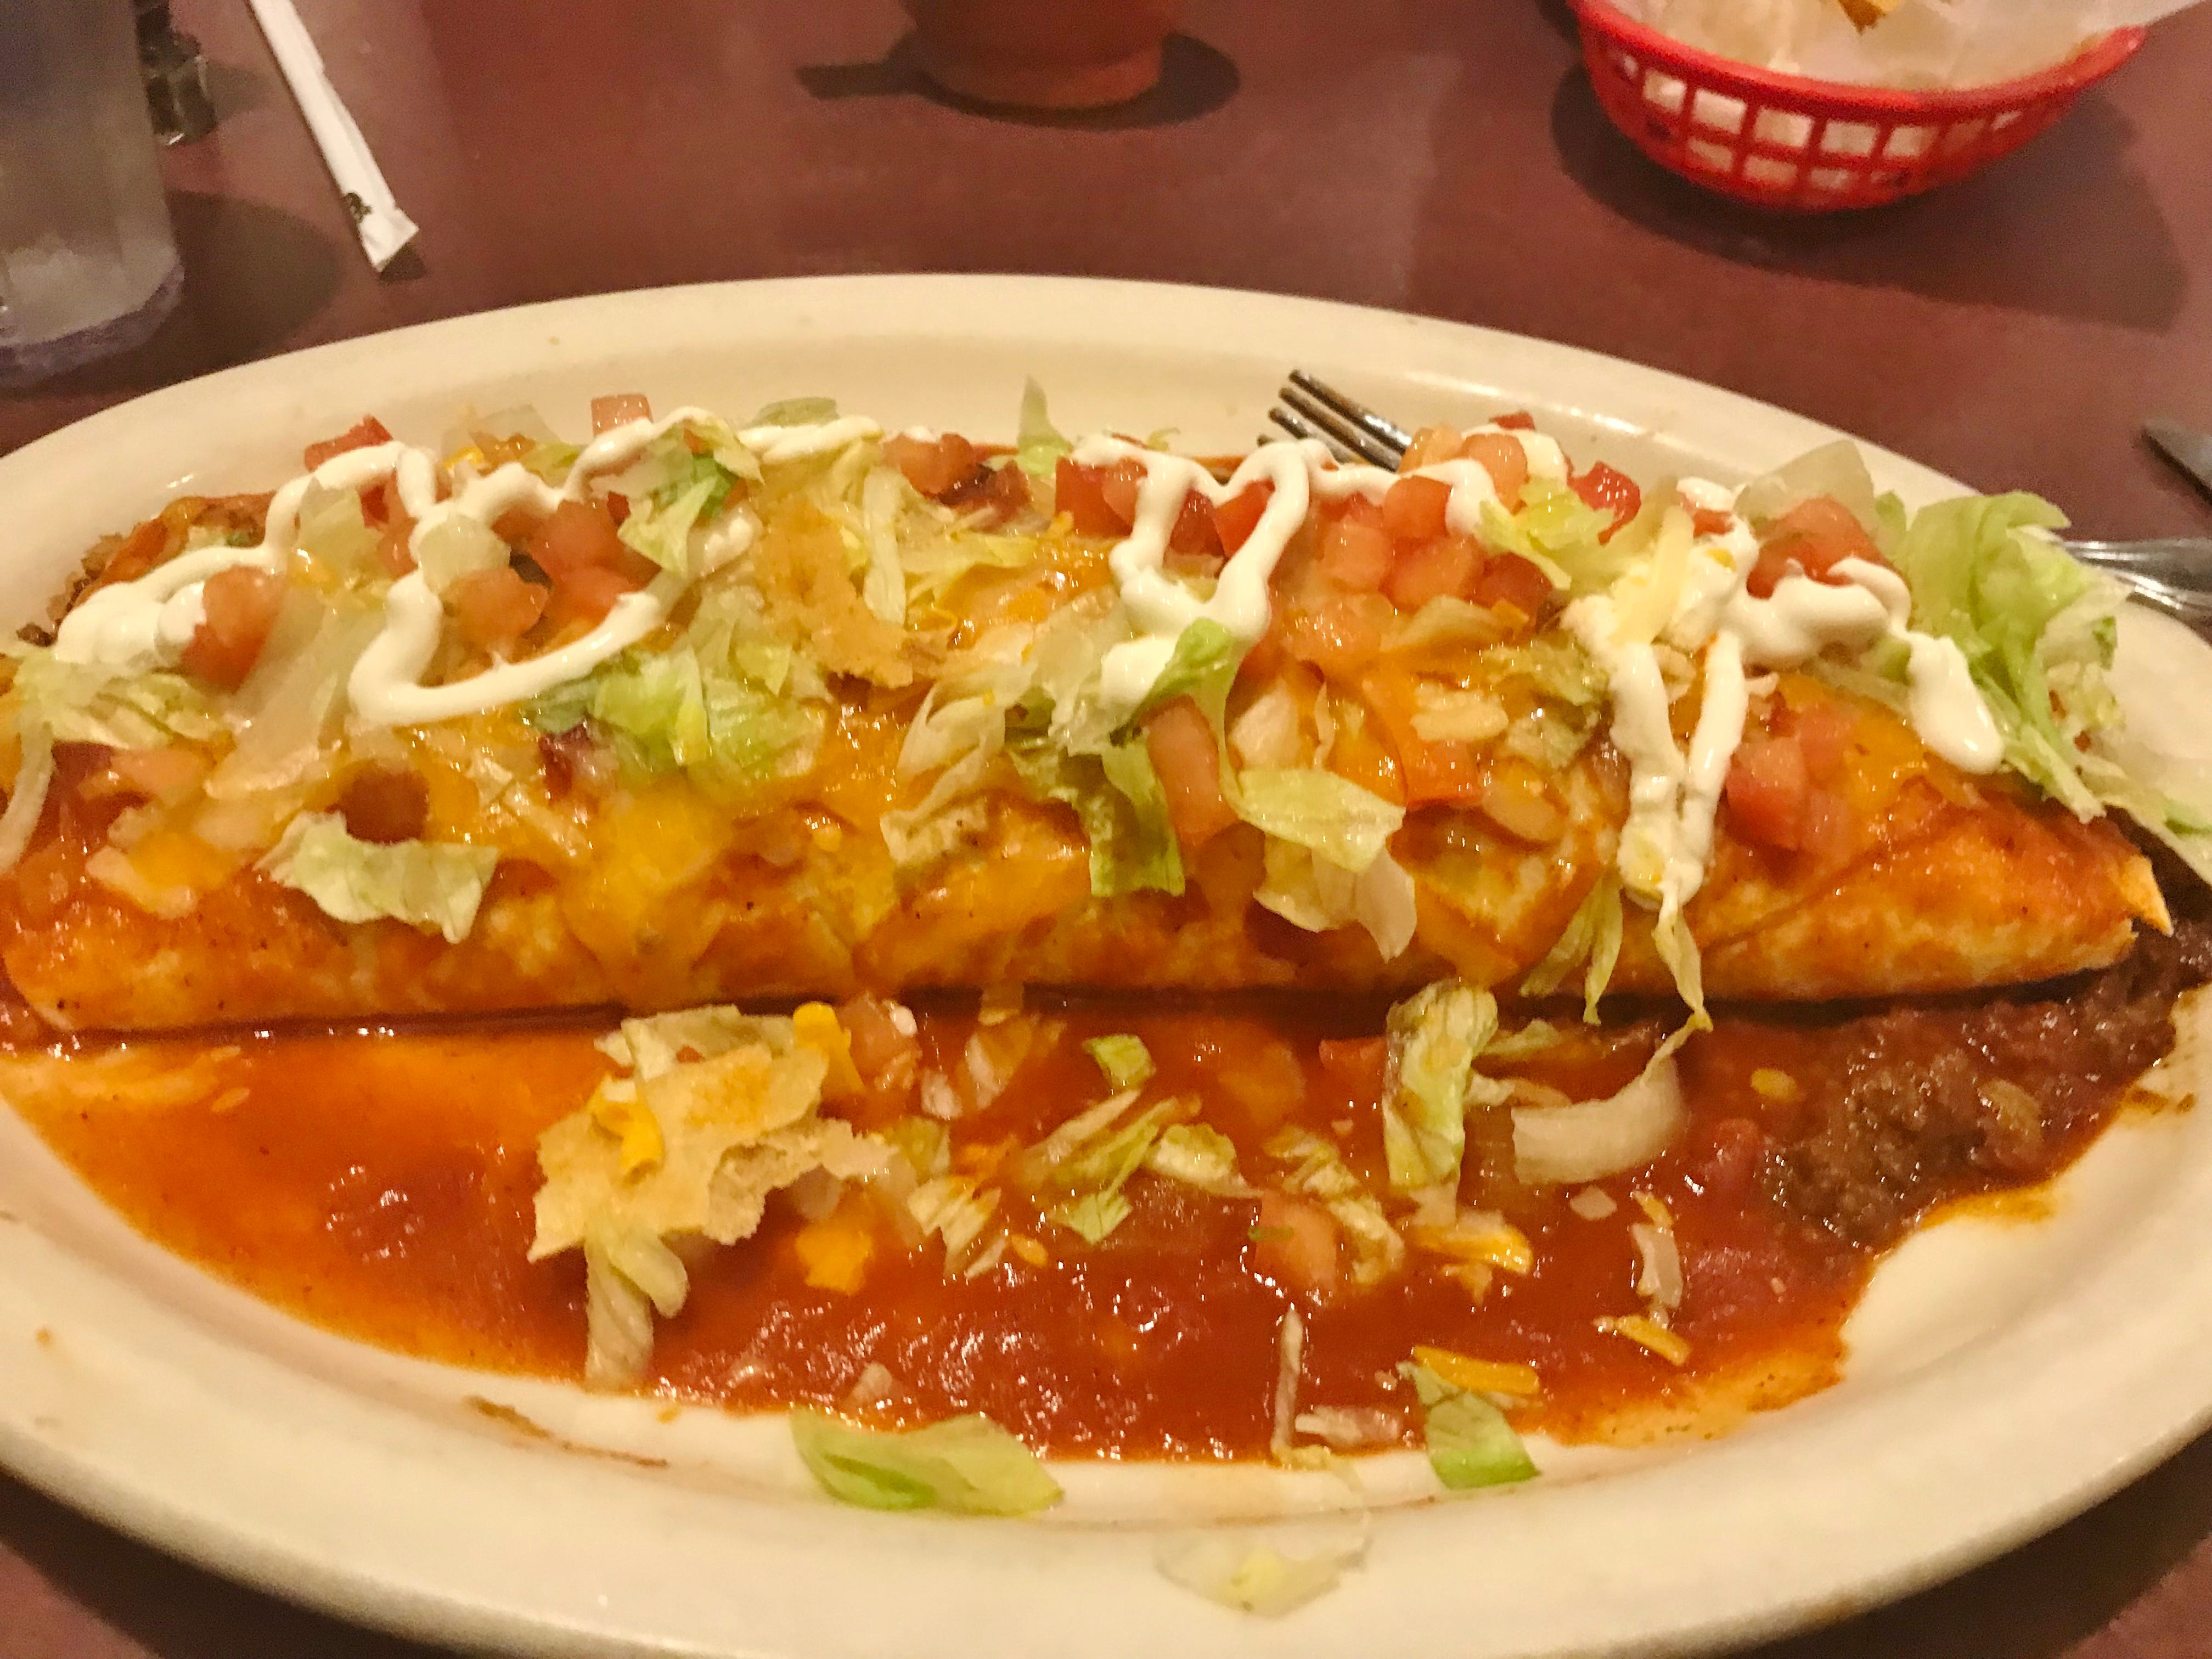 Casa Azteca's  Macho Burrito was a ginormous flour tortillafilled with rice, refried beans and marinated ground beef, smothered with Casa Azteca's famous burrito sauce and cheese then baked. It was garnished with chopped lettuce, tomatoes and sour cream.